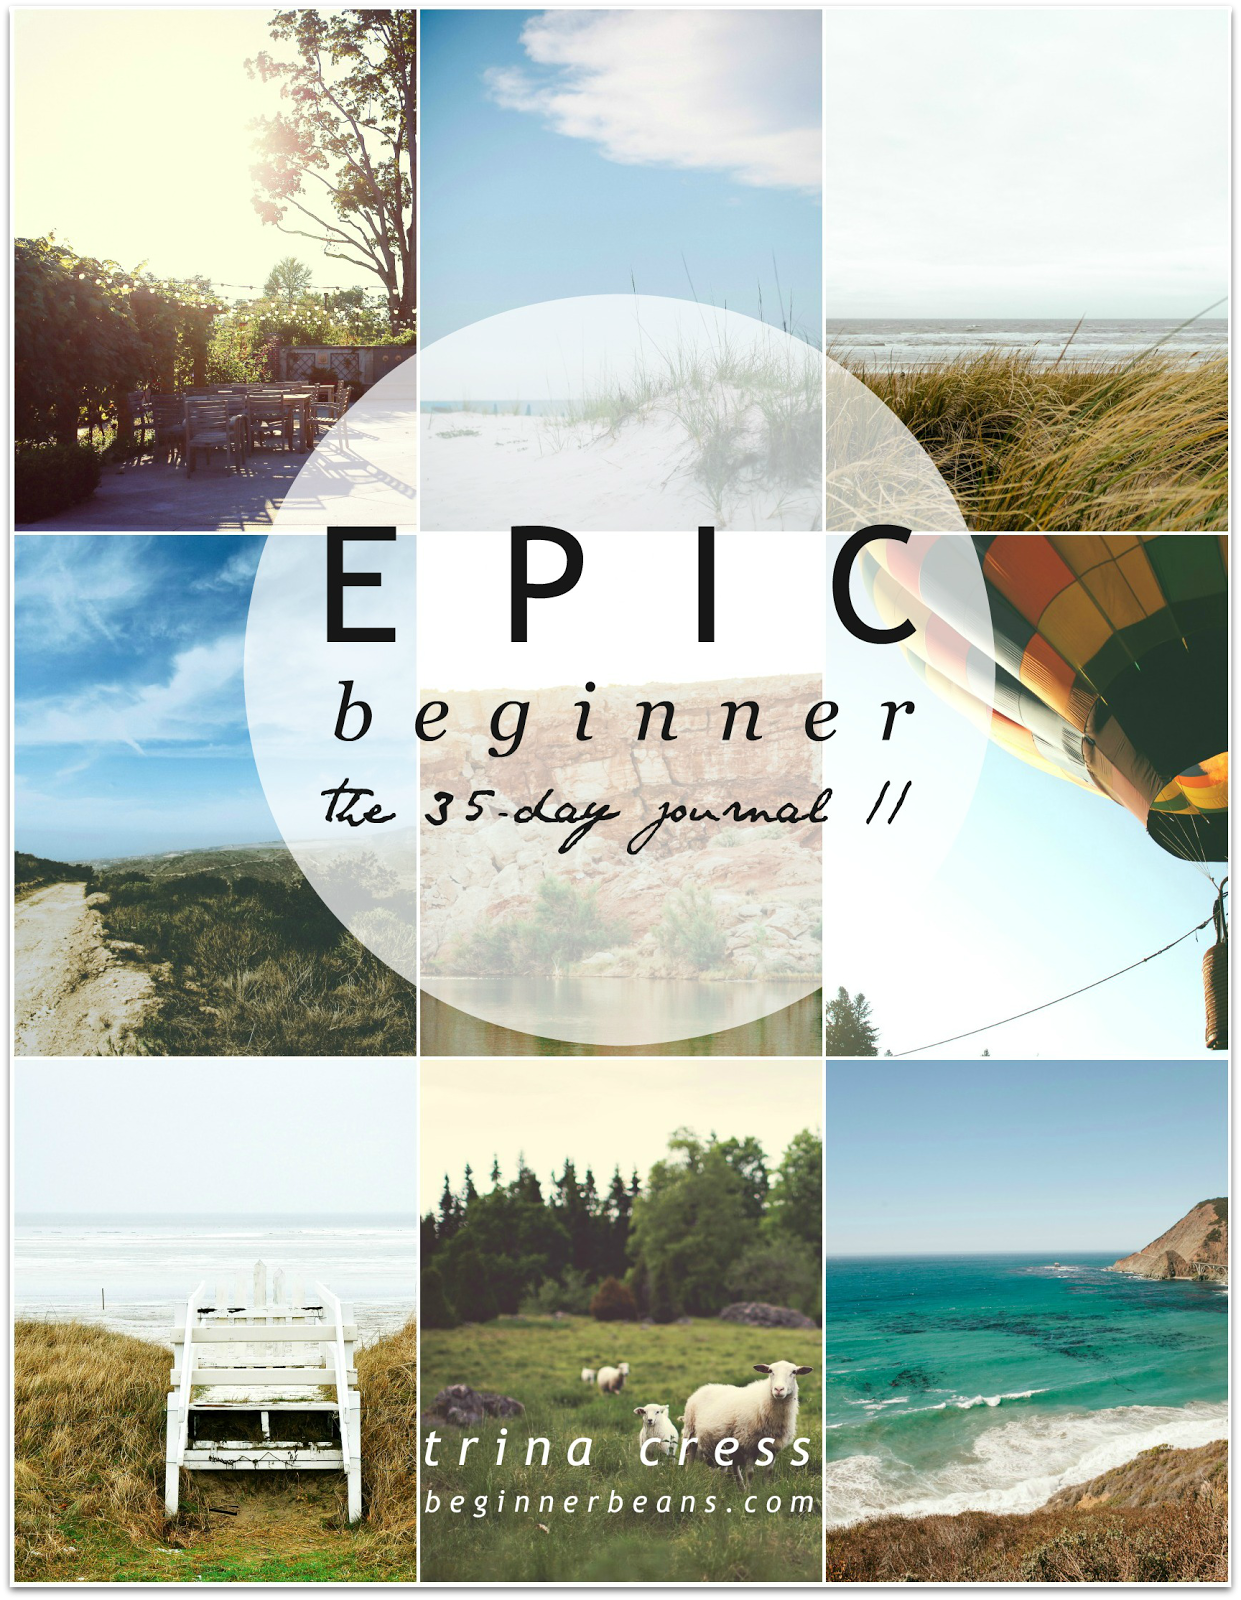 Epic Beginner; The 35-Day Journal for working through your own beginning on purpose on paper